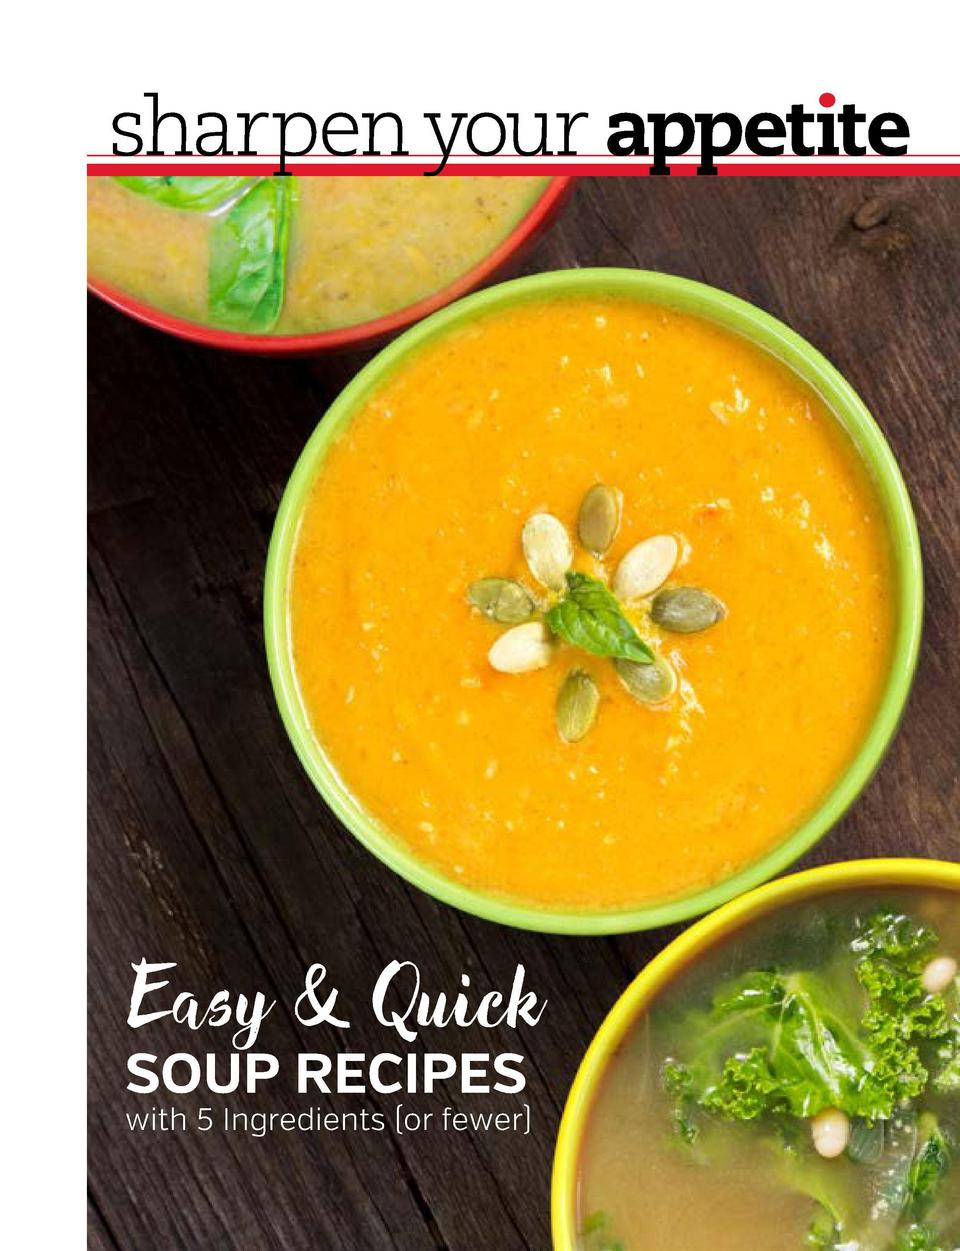 Easy   Quick SOUP RECIPES  with 5 Ingredients  or fewer  To get even more amazing visuals, follow us  Book your event at  ...